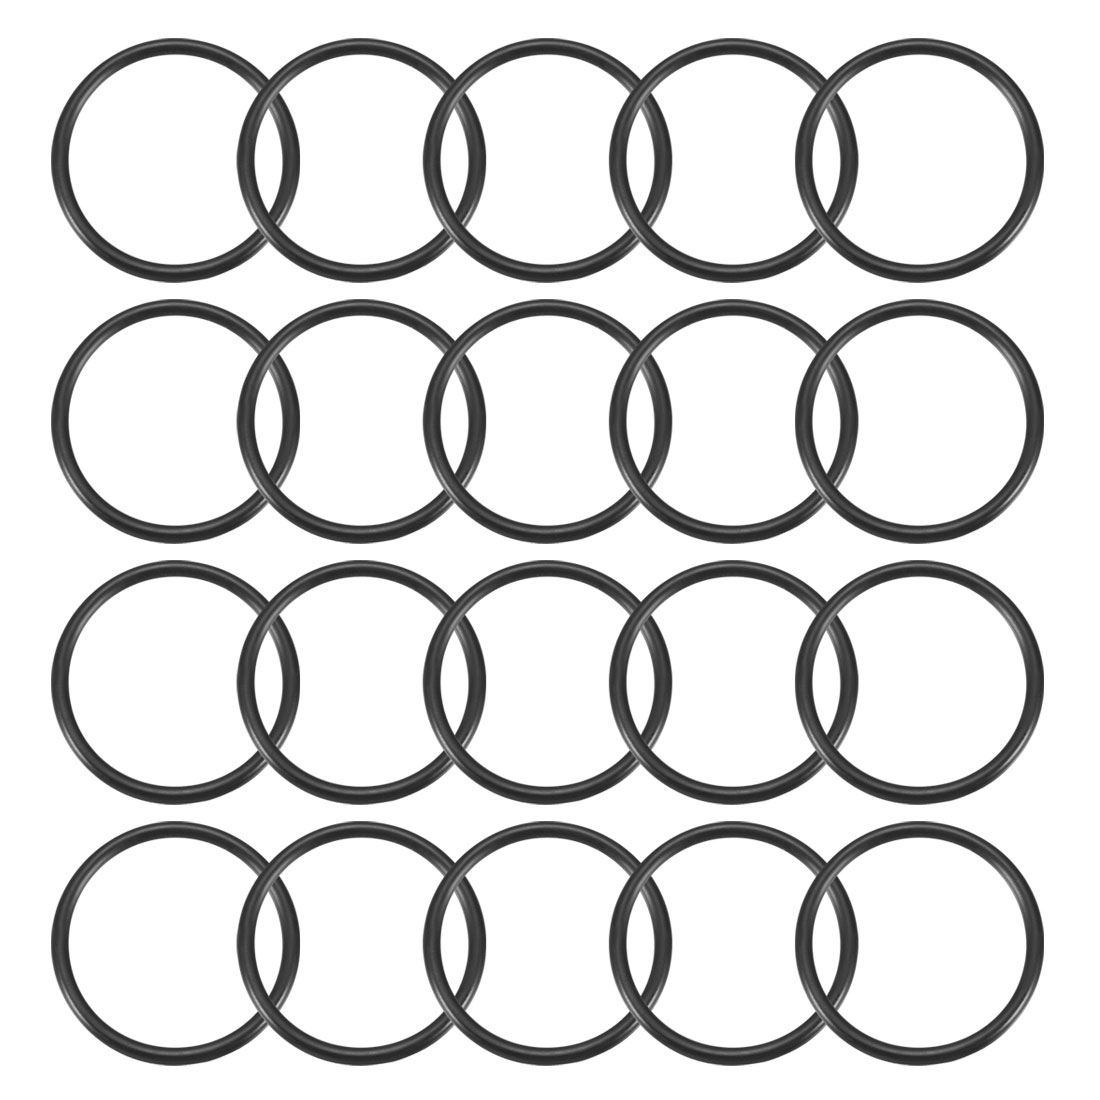 20Pcs Black 27 x 2mm Industrial Flexible Rubber O Ring Oil Sealing Grommets